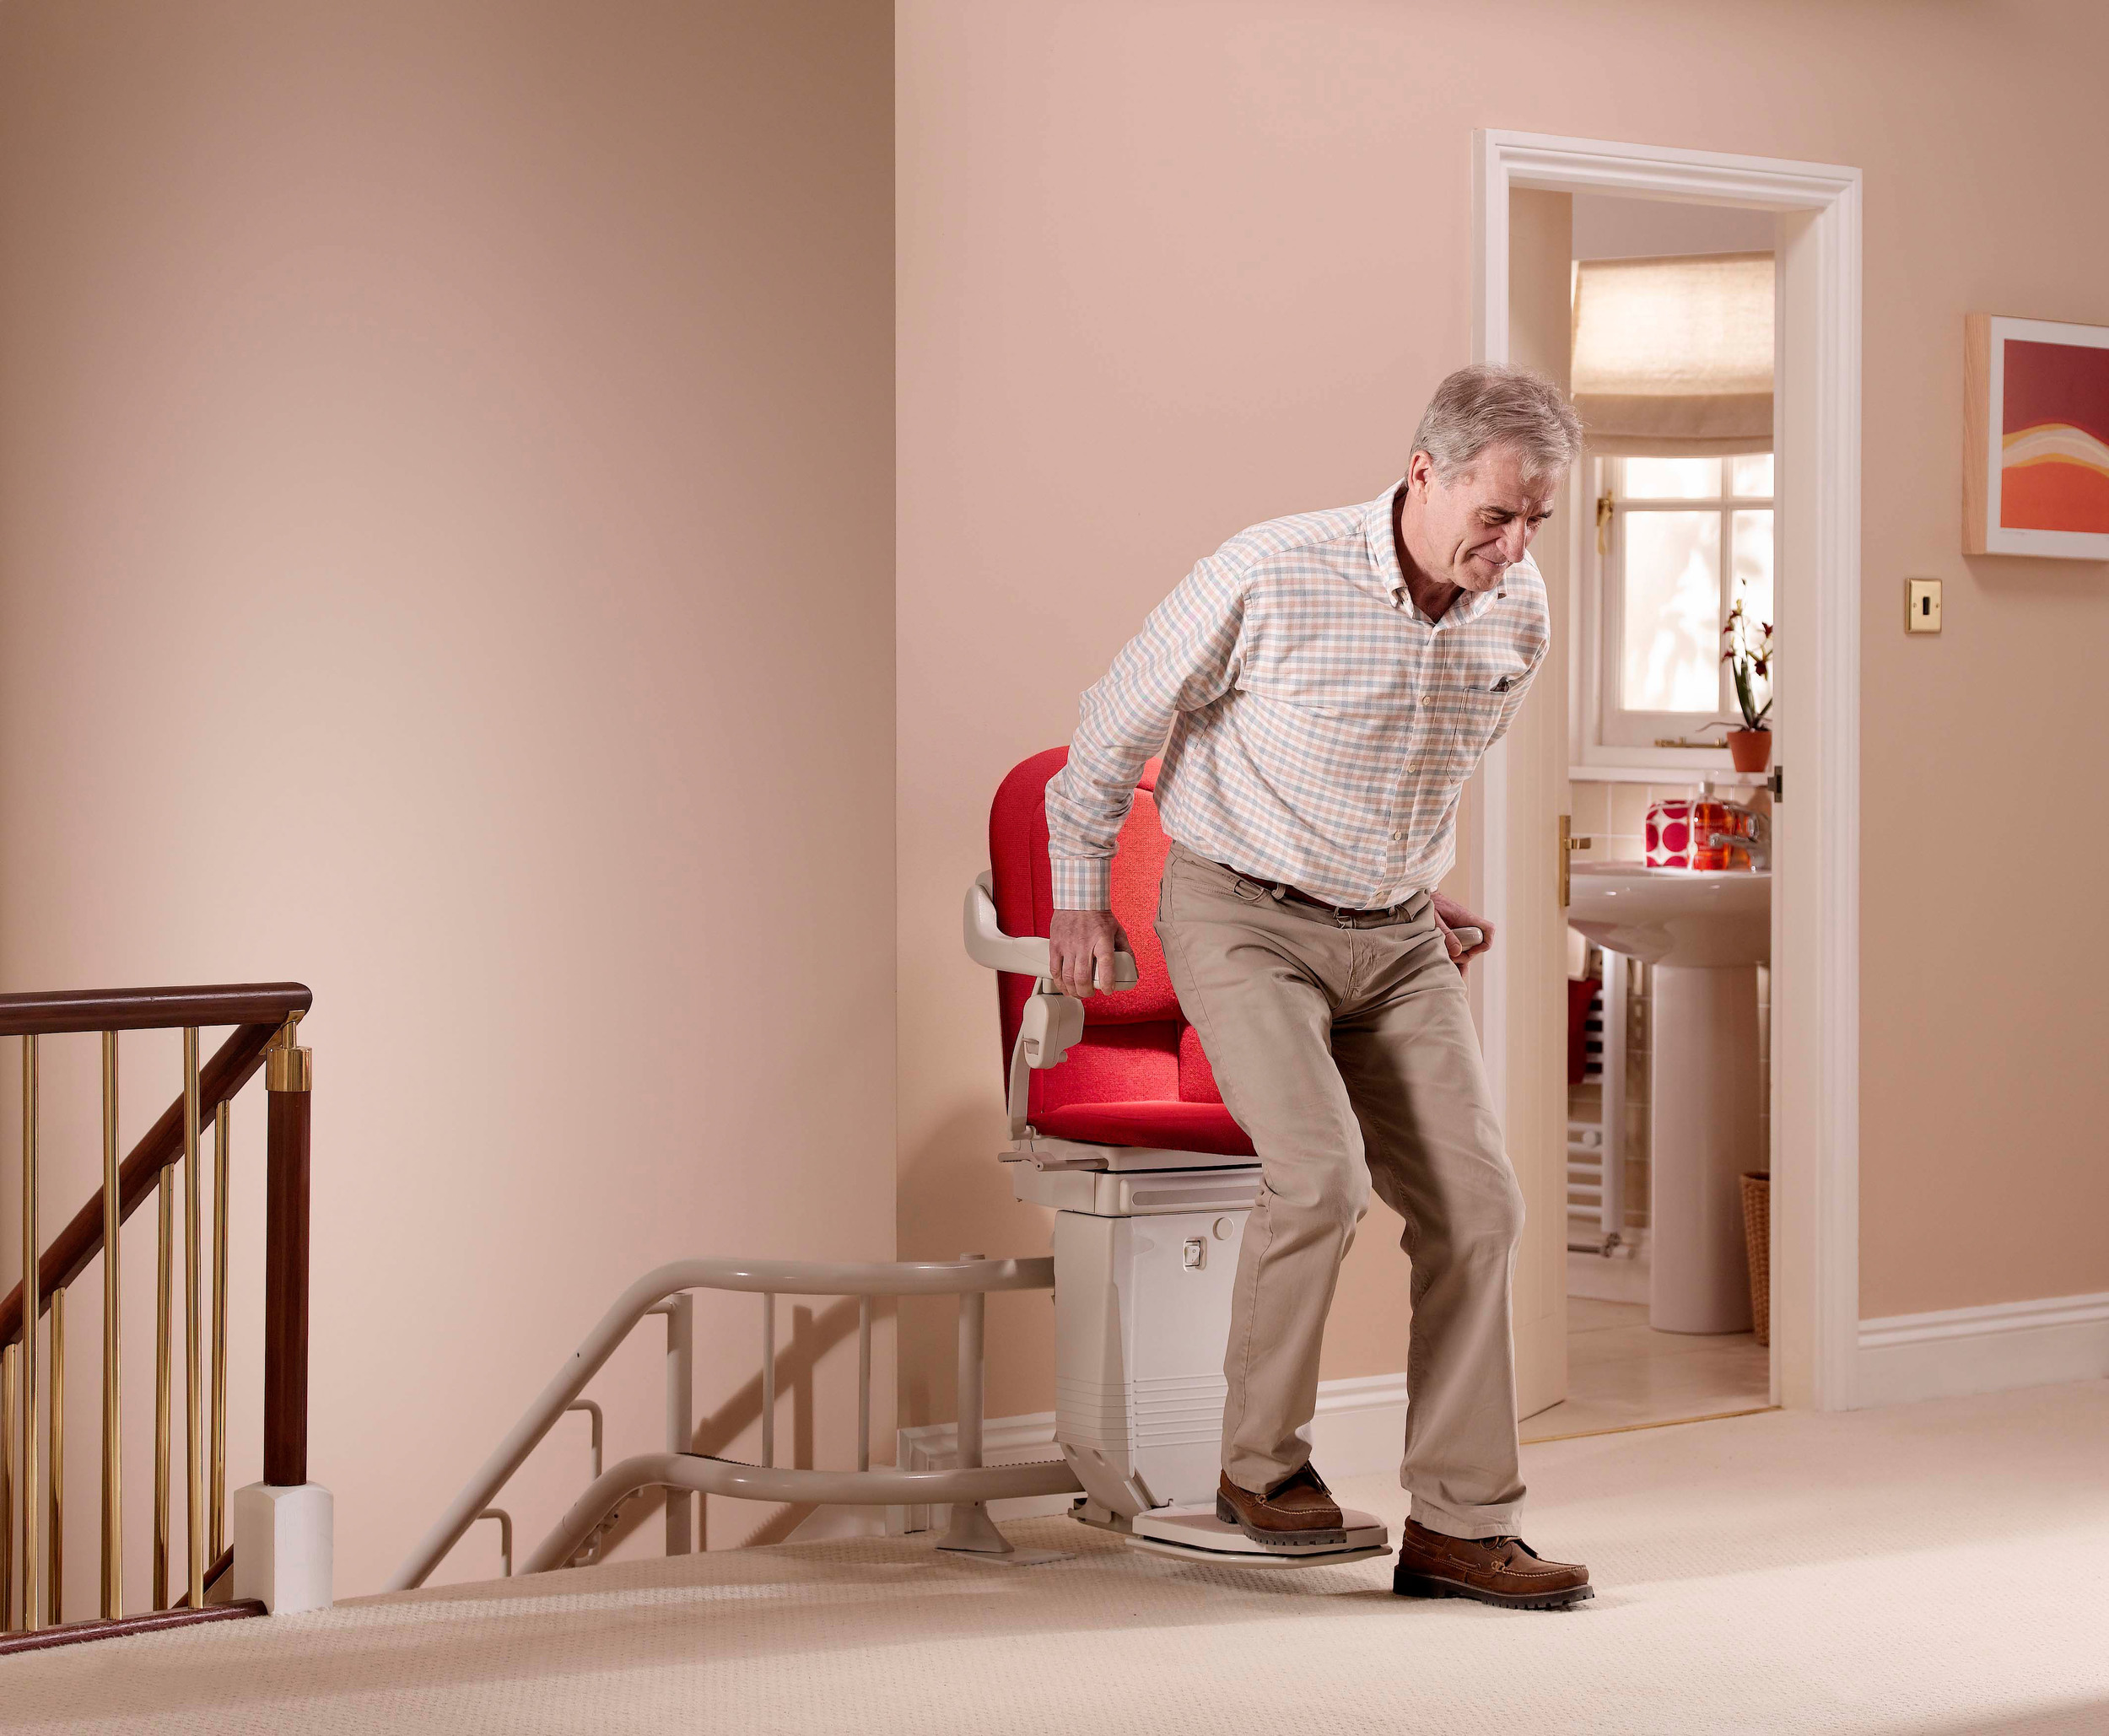 Home Elevator Or Stair Lift Which Is Right For You Home Elevators Stair